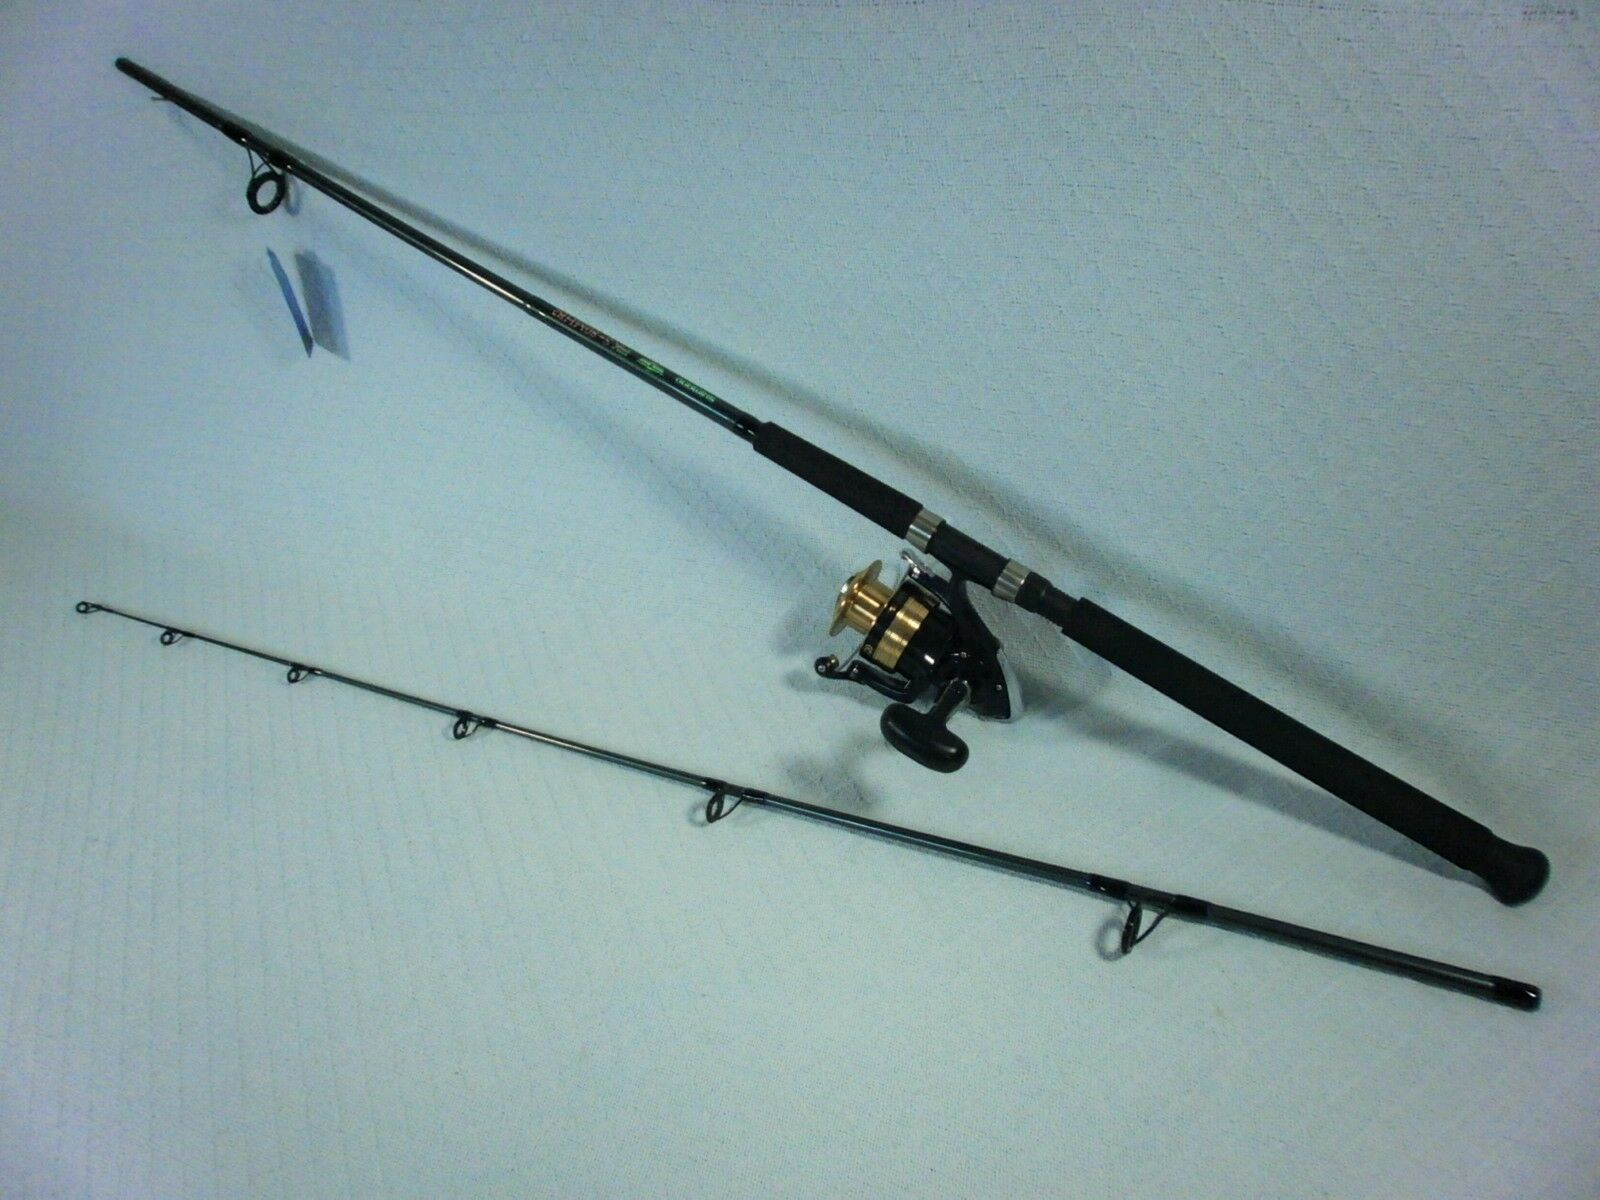 FXS 8' MH SPINNING ROD WITH DAIWA SWEEPFIRE  5000-2B REEL COMBO (KVSPMR0219)  sale online save 70%